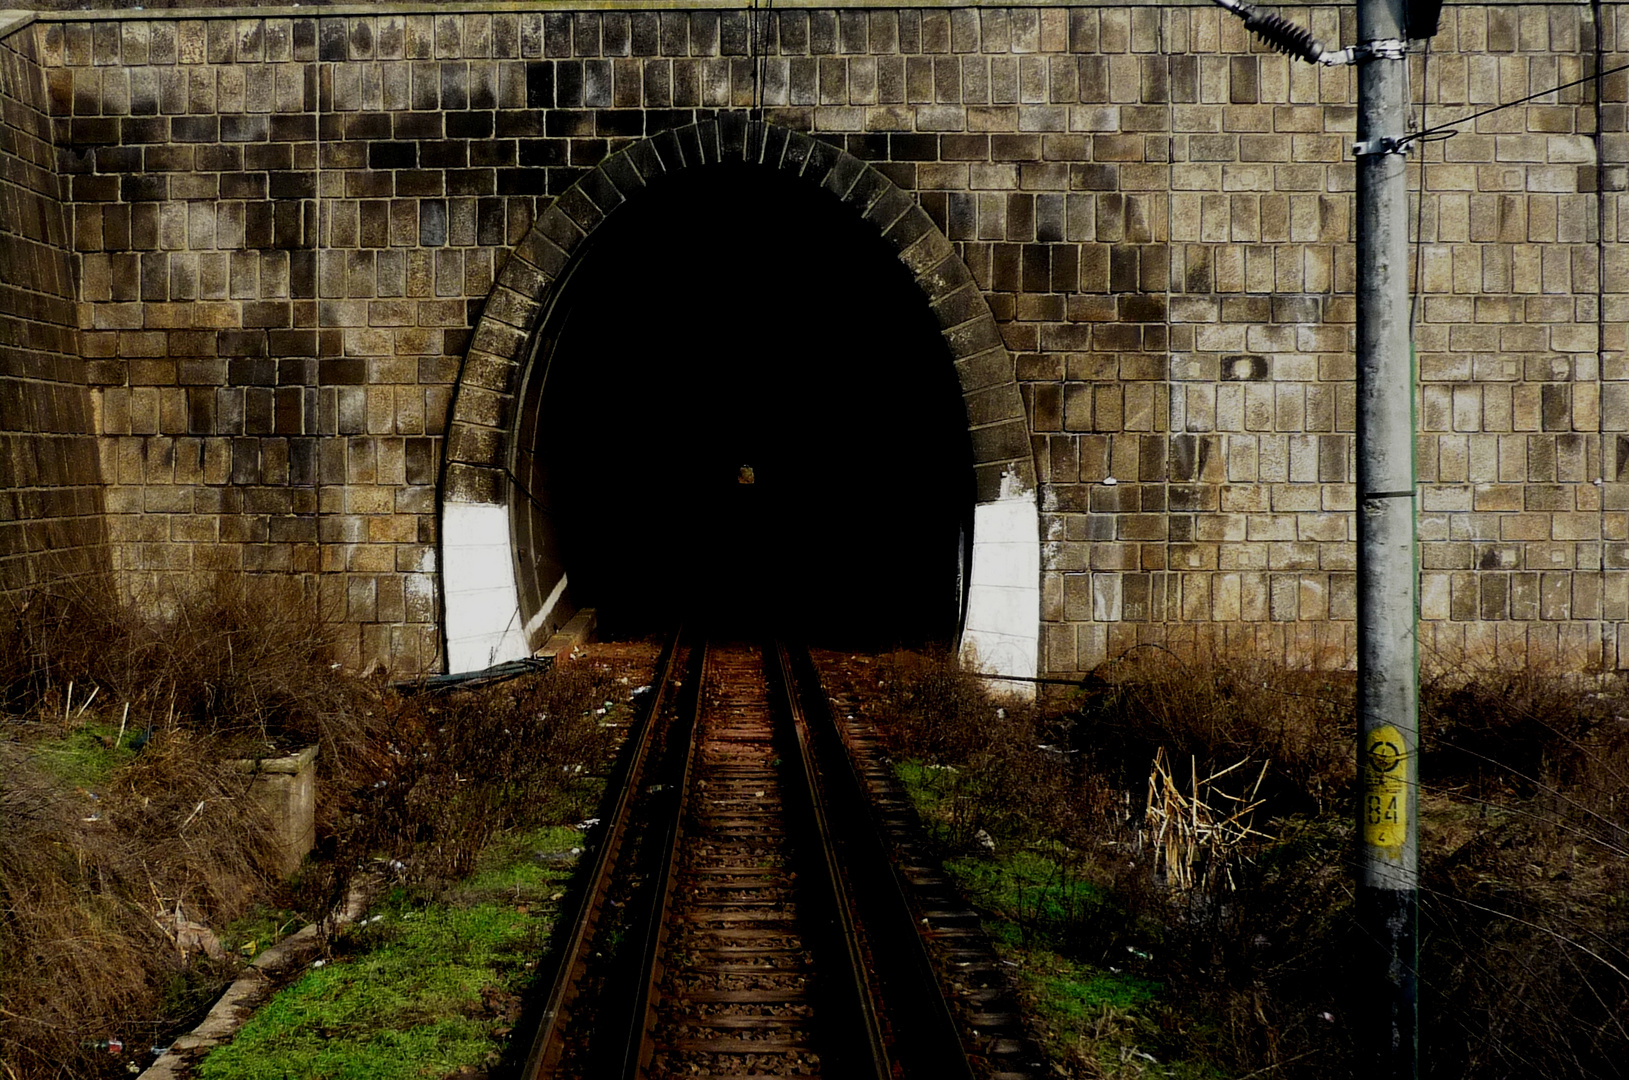 A never-ending story. The tunnel of home.